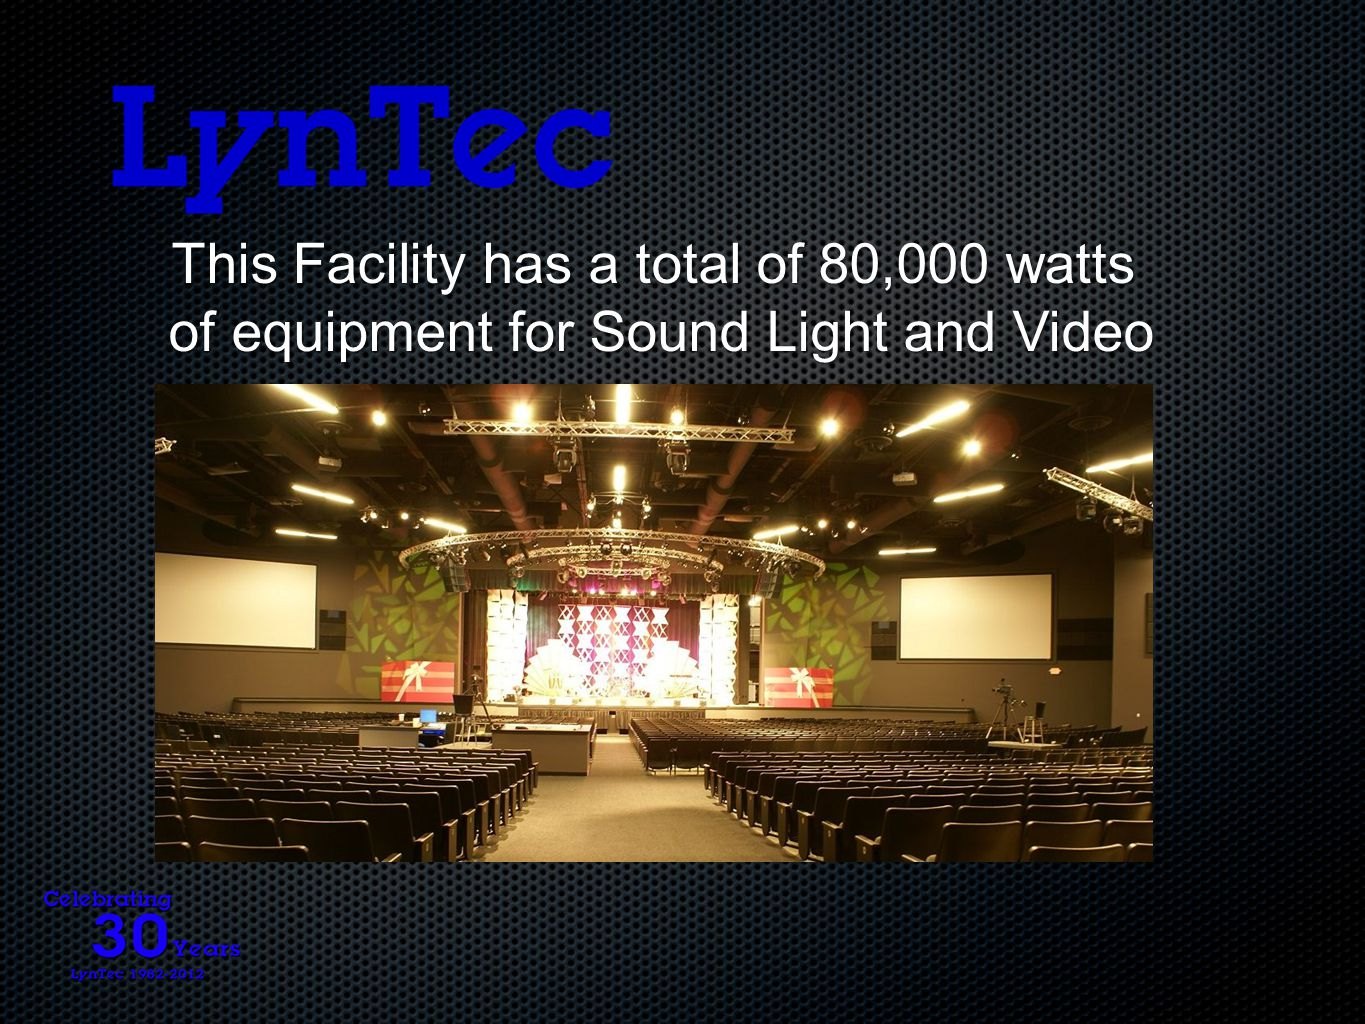 This Facility has a total of 80,000 watts of equipment for Sound Light and Video of equipment for Sound Light and Video